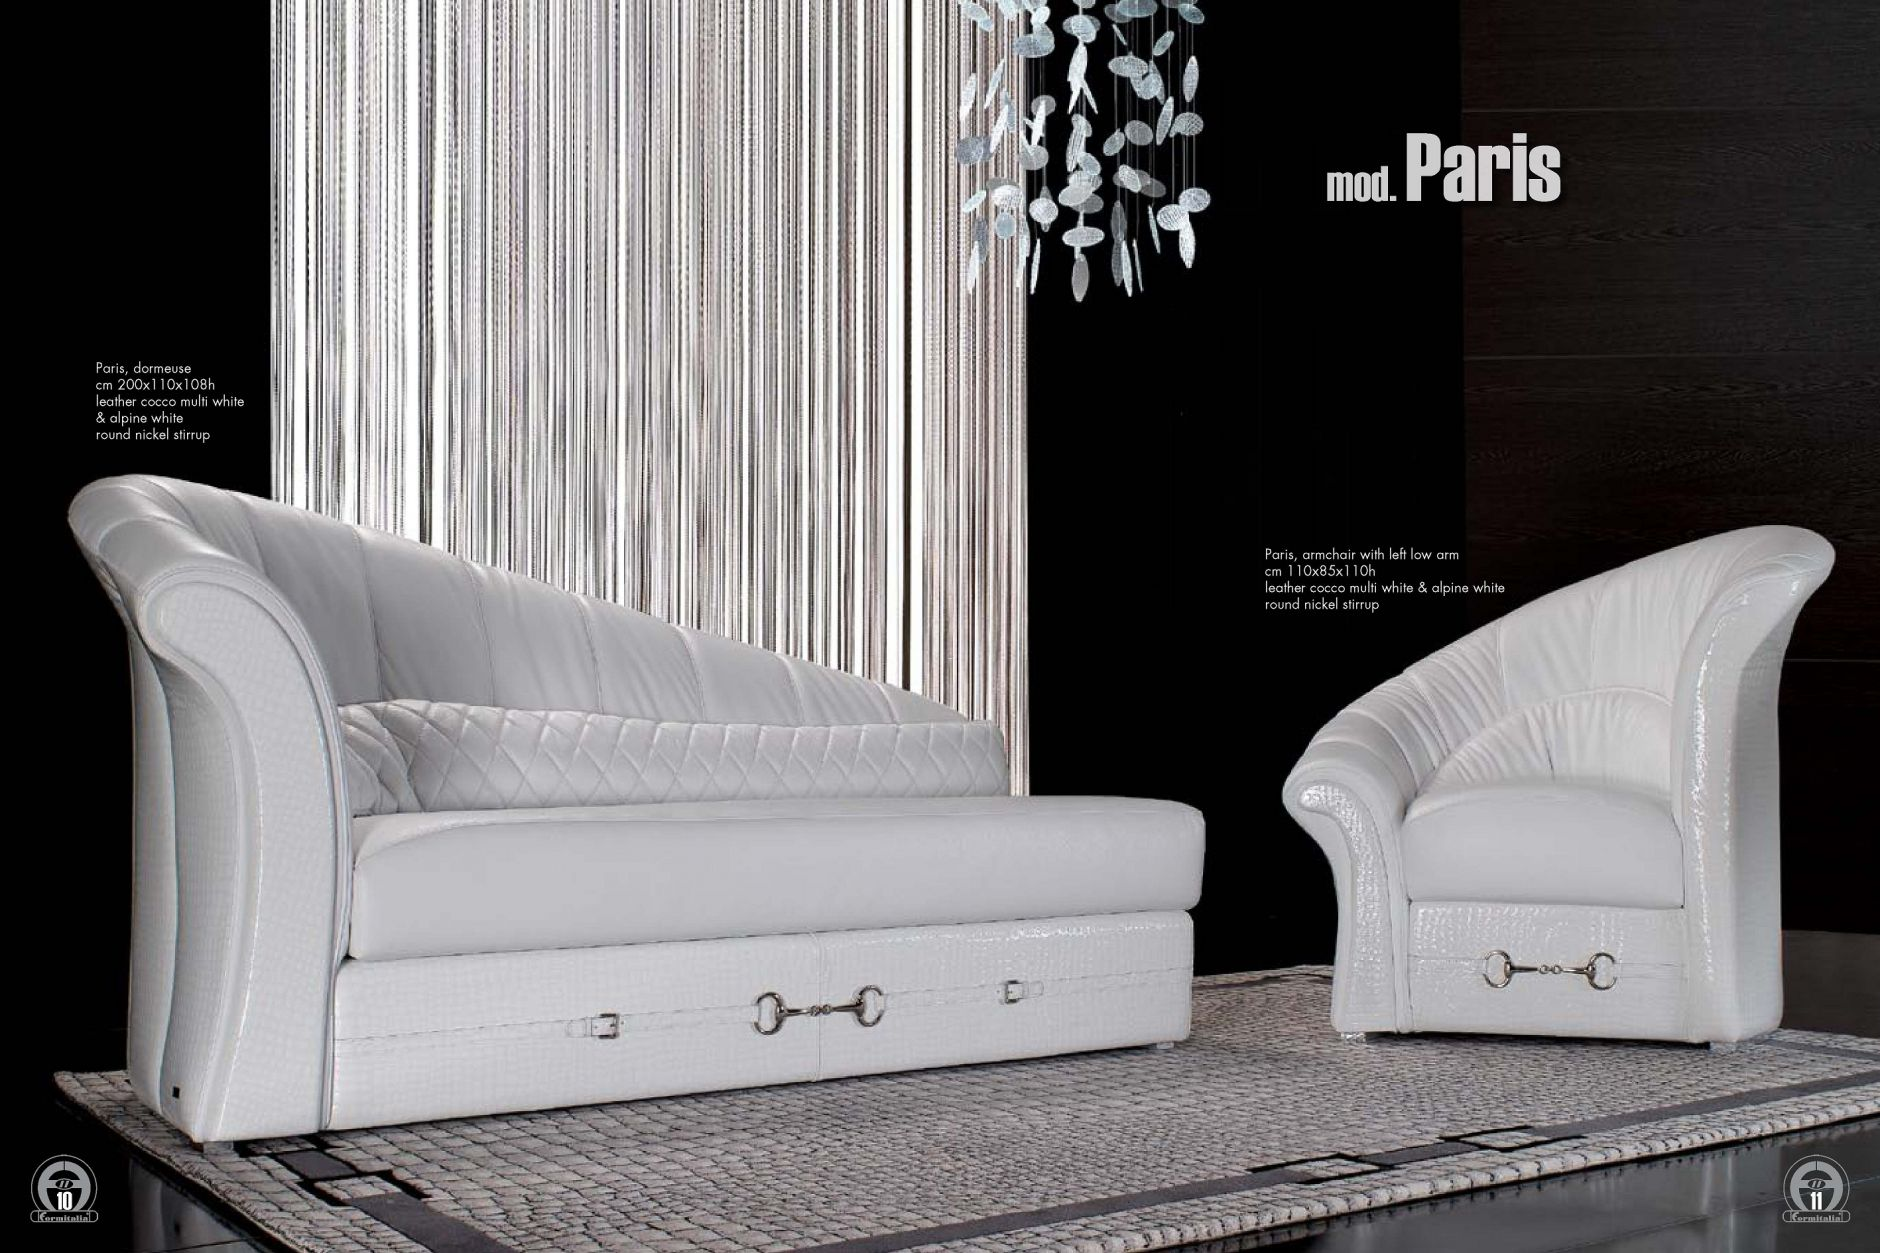 vip sofas polsterm bel modell parisdie m bel aus italien. Black Bedroom Furniture Sets. Home Design Ideas